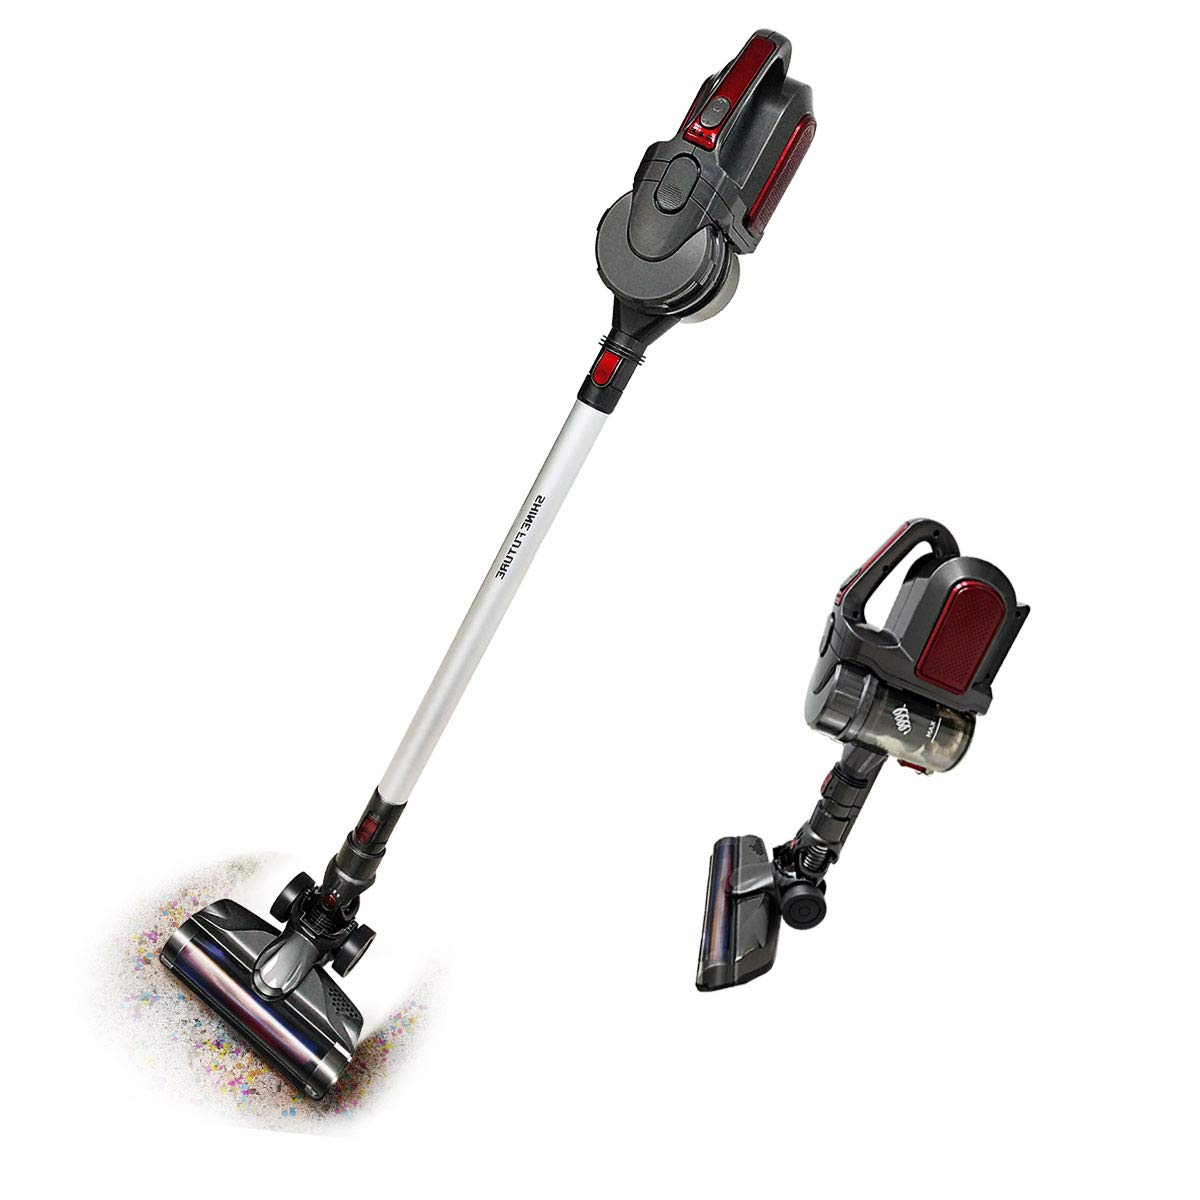 SHINEFUTURE Upright Cleaner Stick 2 in 1 Cordless 8.5Kpa Powerful Lightweight with Lift-Away Hand Vacuum, 22.2 V Battery and Wall Mount